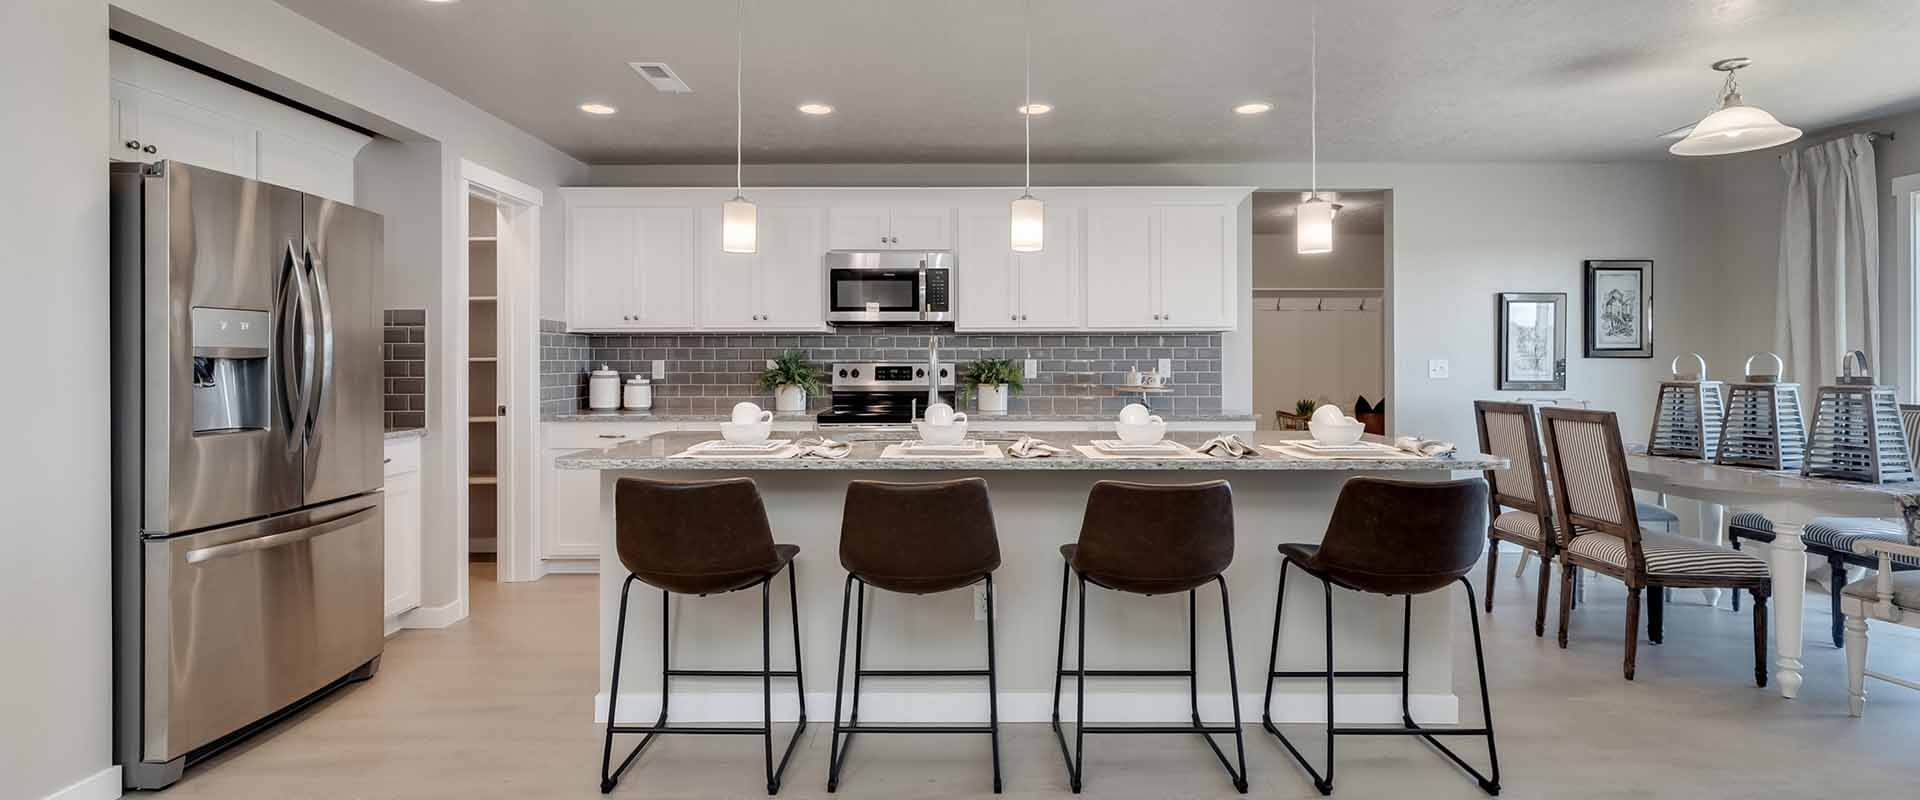 Garnet_Hubble_Homes_New_Homes_Boise_Kitchen.jpg